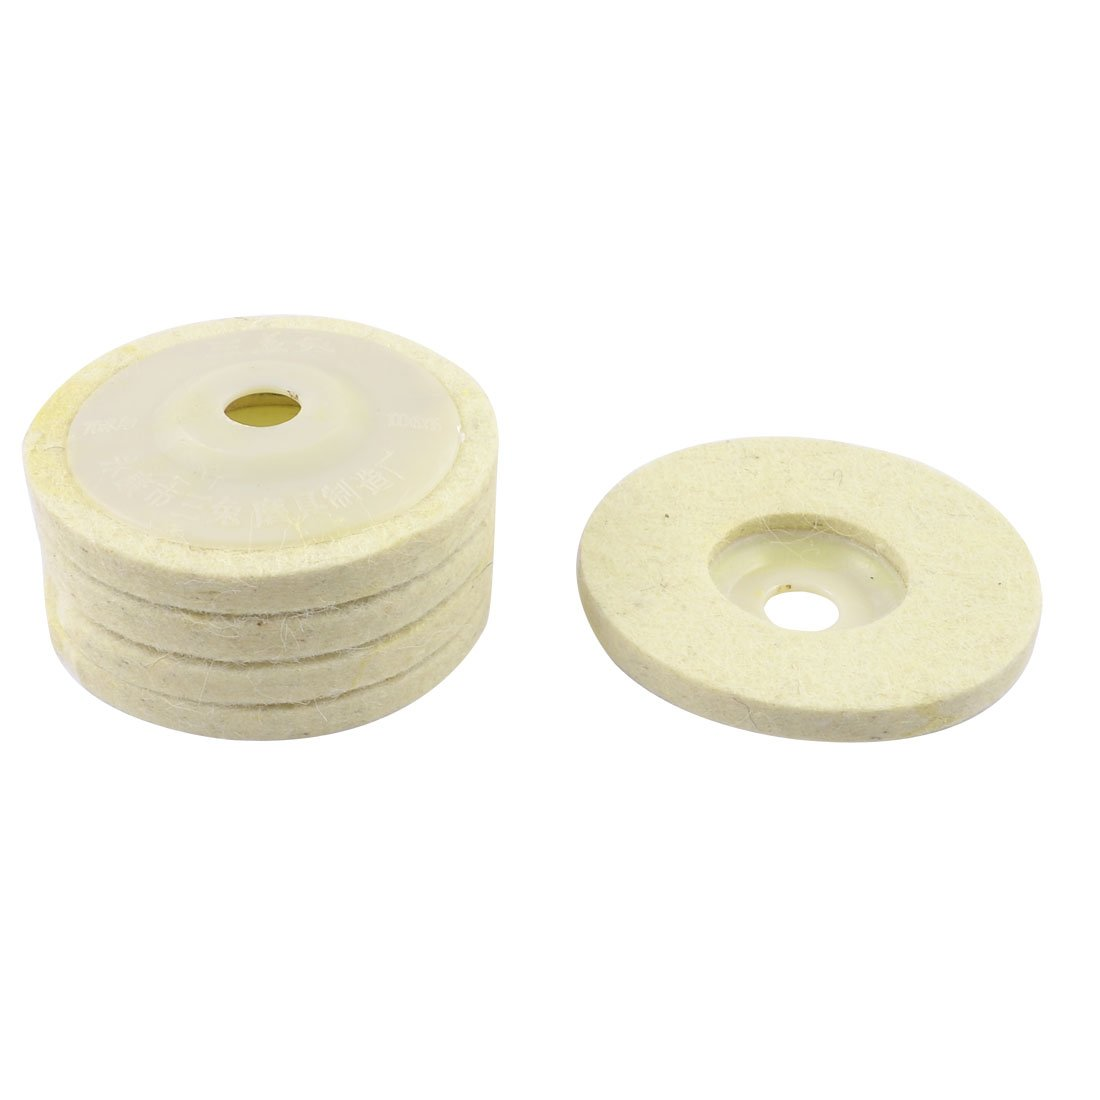 5 Pcs Off White Wool Felt Polishing Disc Wheel Pad 100mm x 10mm x 16mm